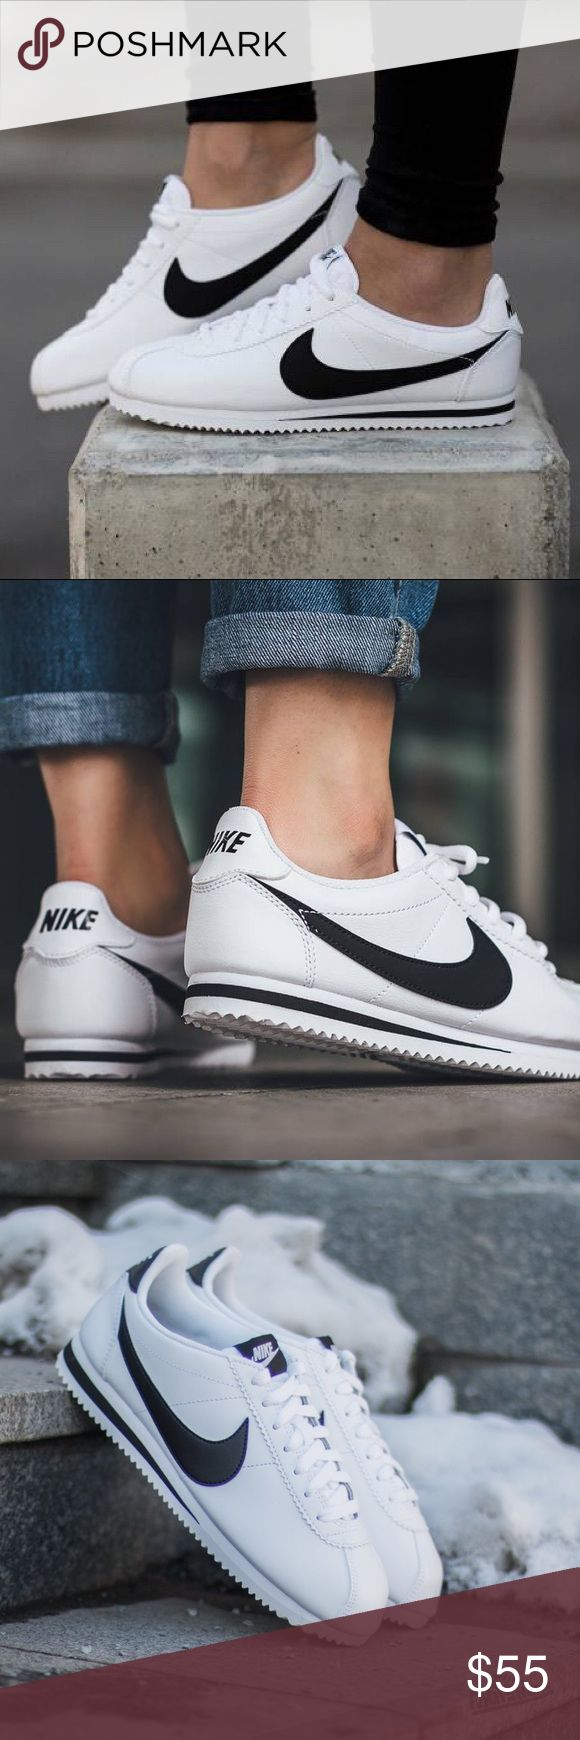 Nike Cortez Black/White • Brand new in box  • Size 4.5y/6 women's   • No trades Nike Shoes Sneakers